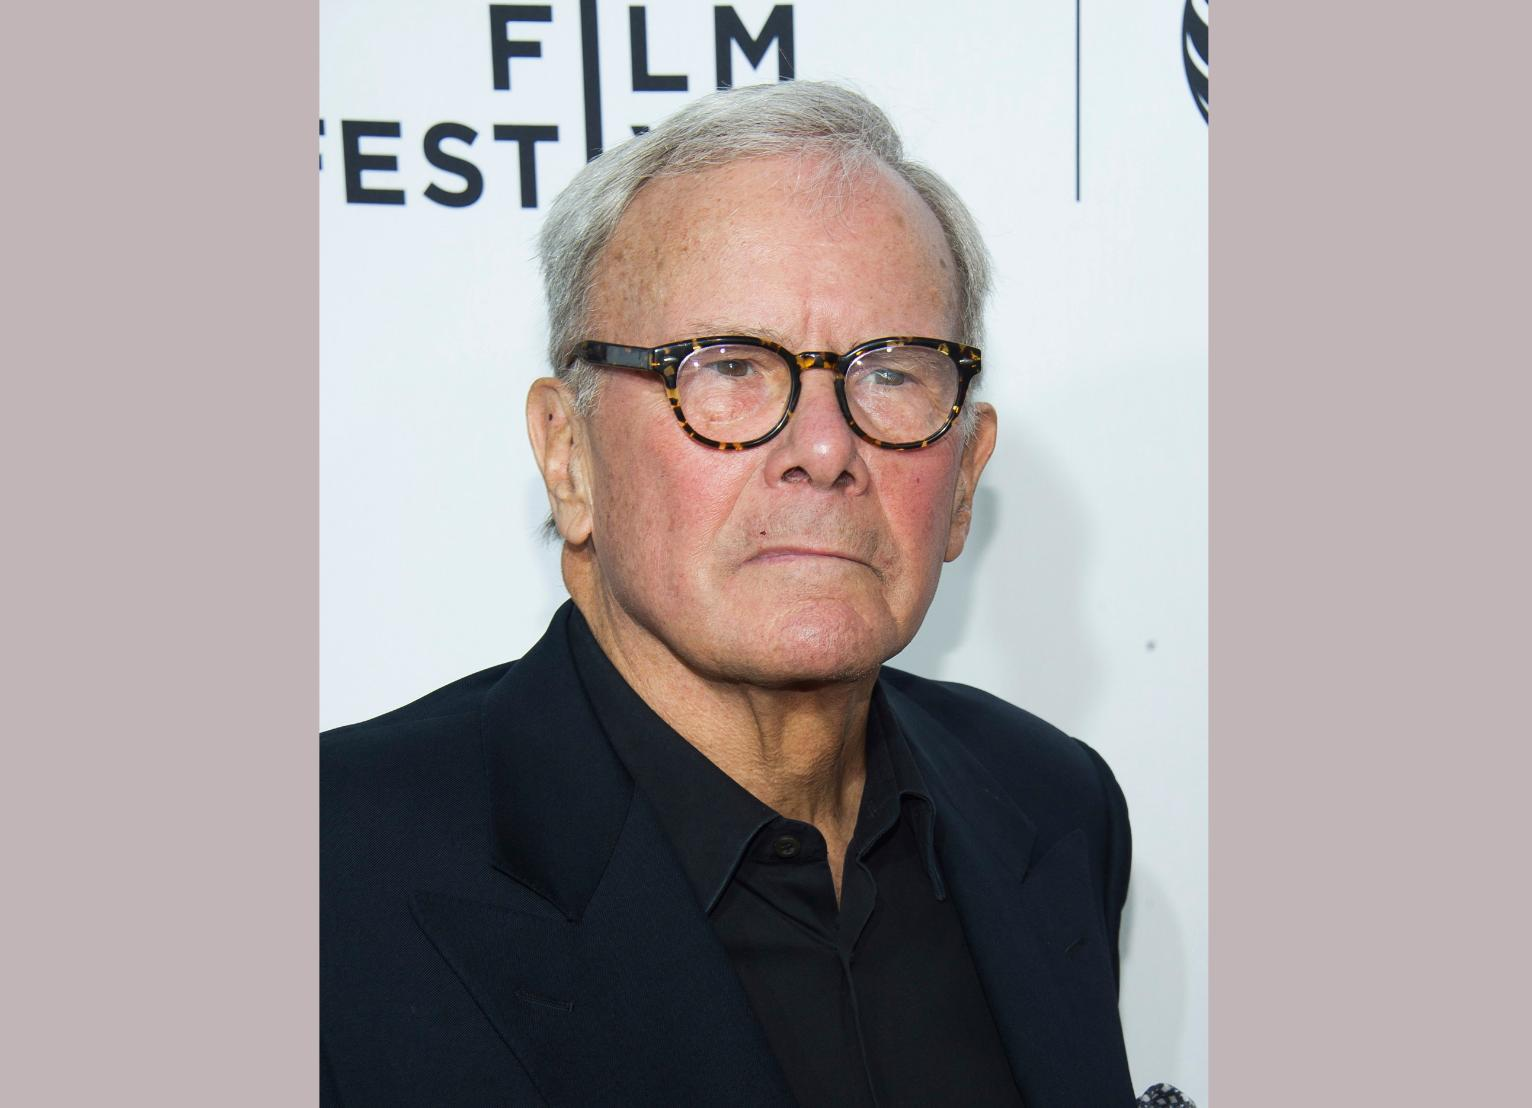 brokaw senior personals Plans for normandy memorial alive, but barely   court senior judge john g  in the greatest generation, nbc anchor tom brokaw's book about.